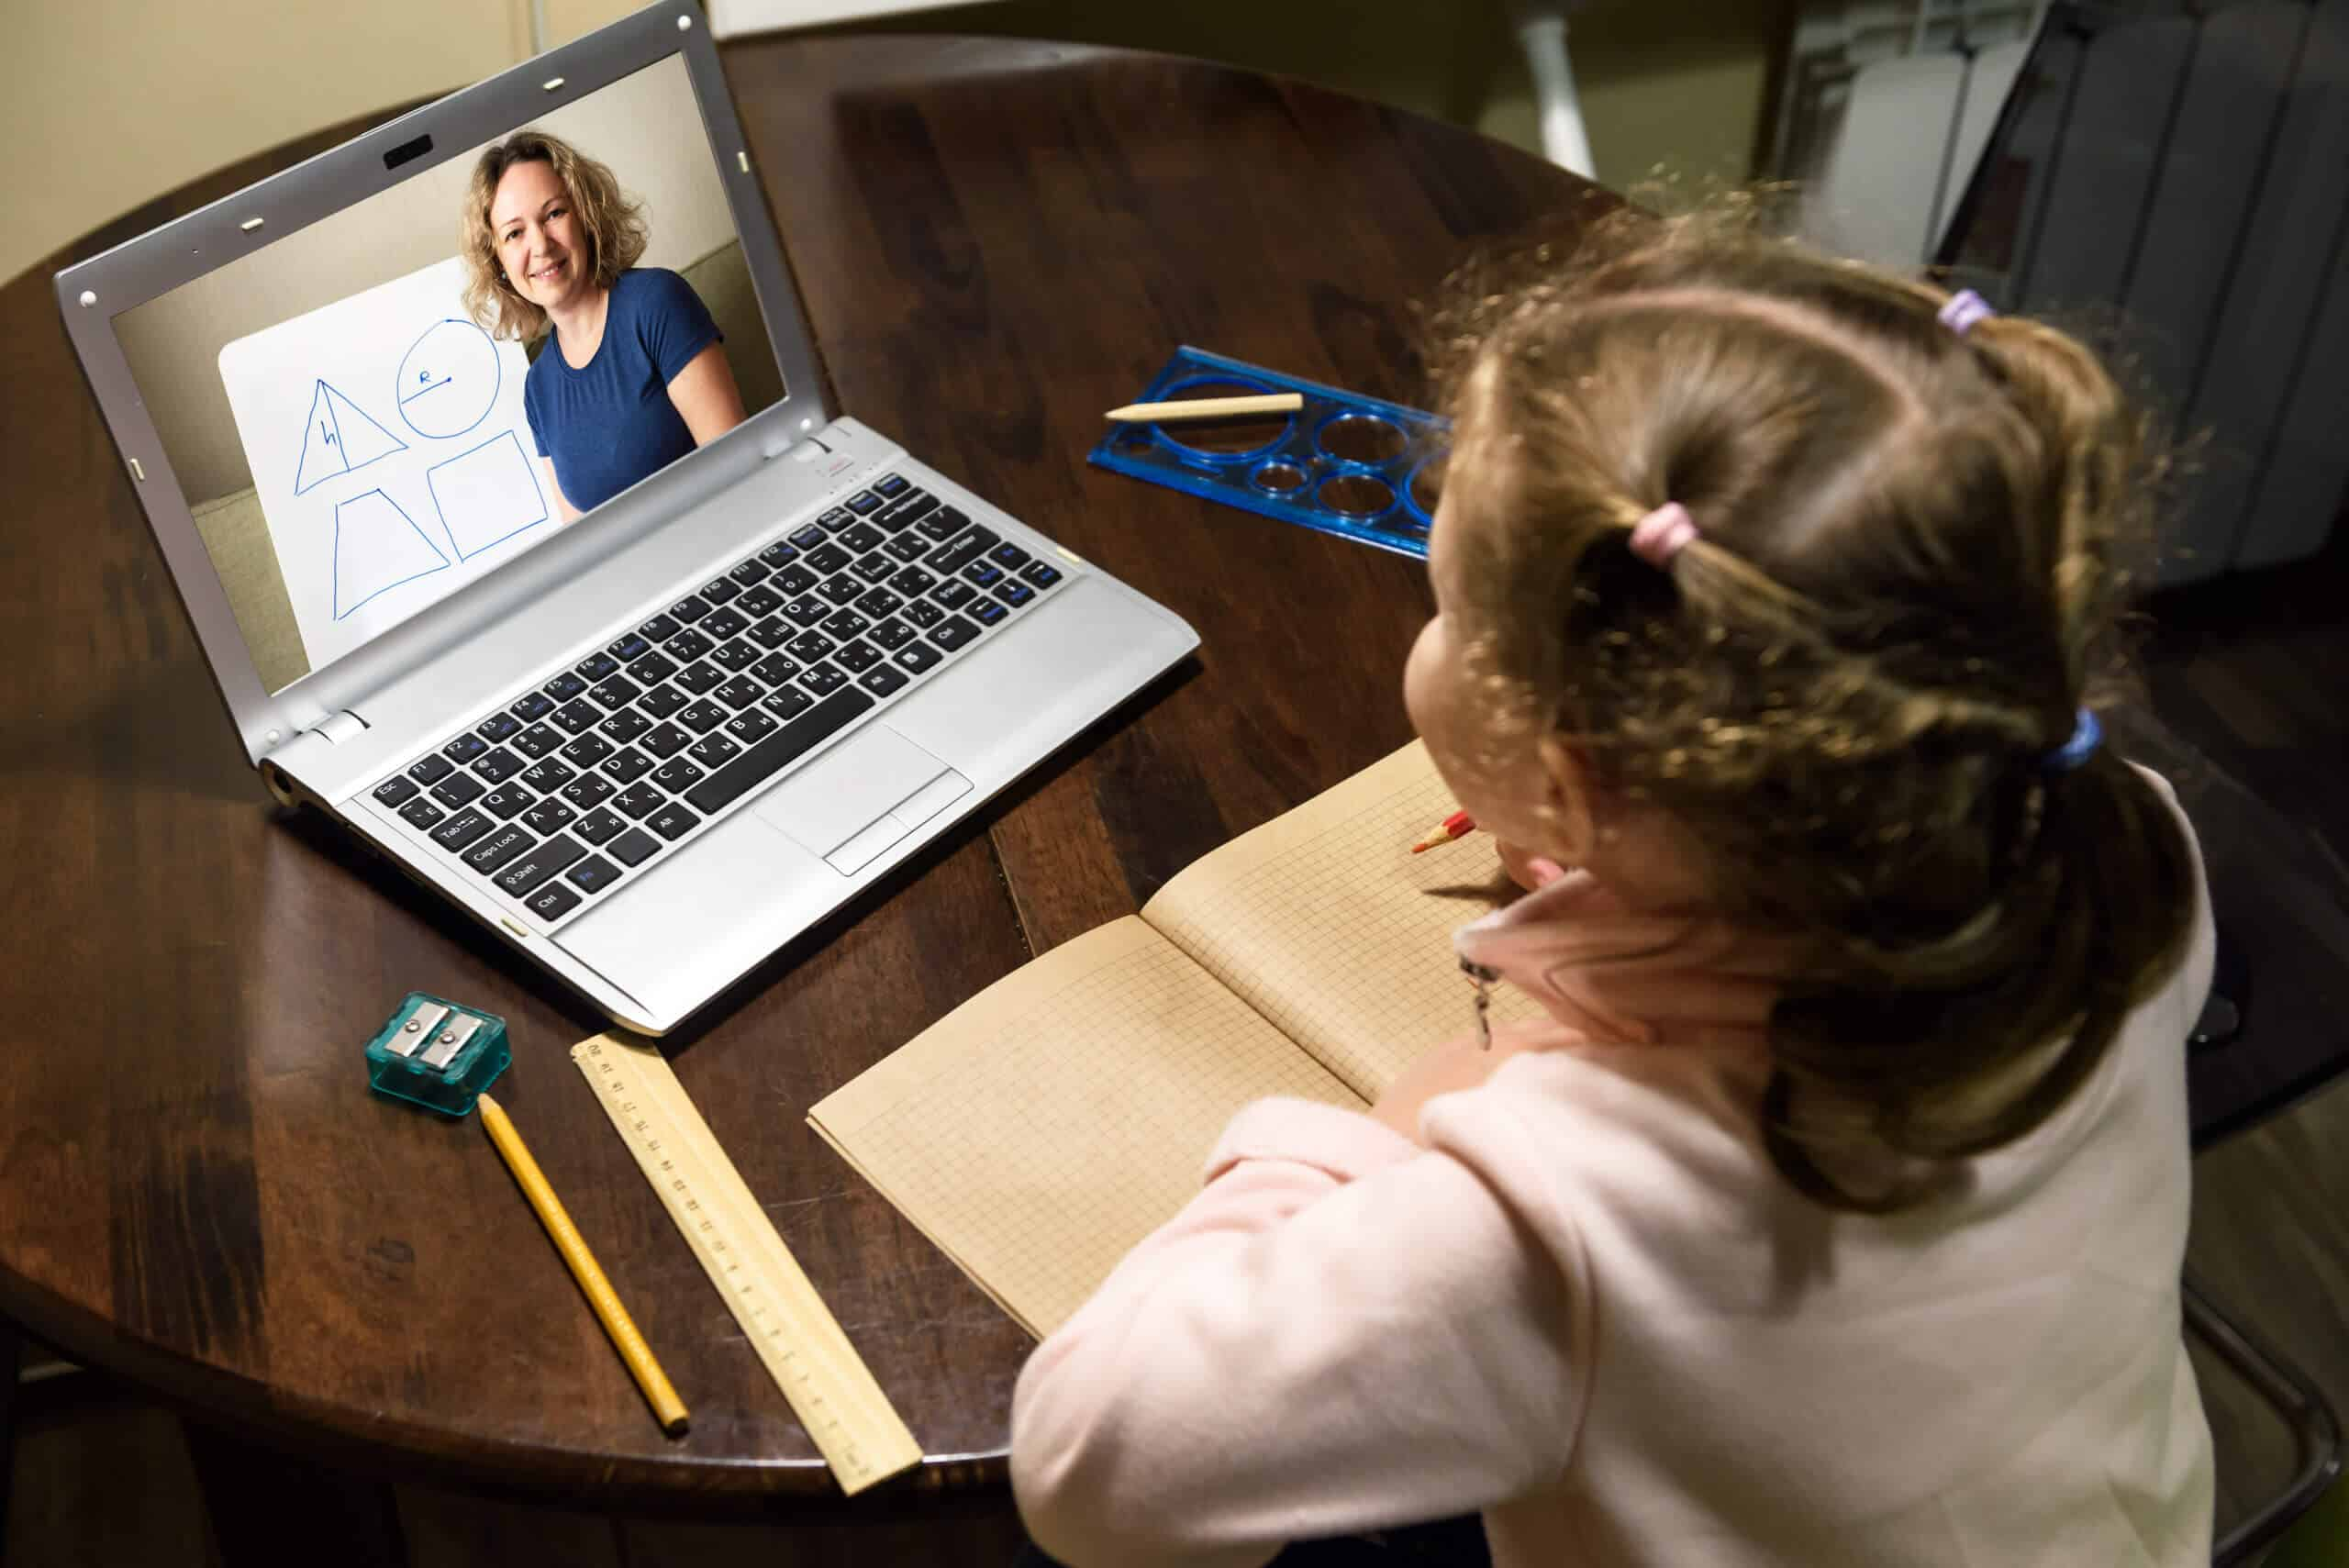 Kid virtual learning with teacher by laptop, tutor teaches preschool child during quarantine due to coronavirus.